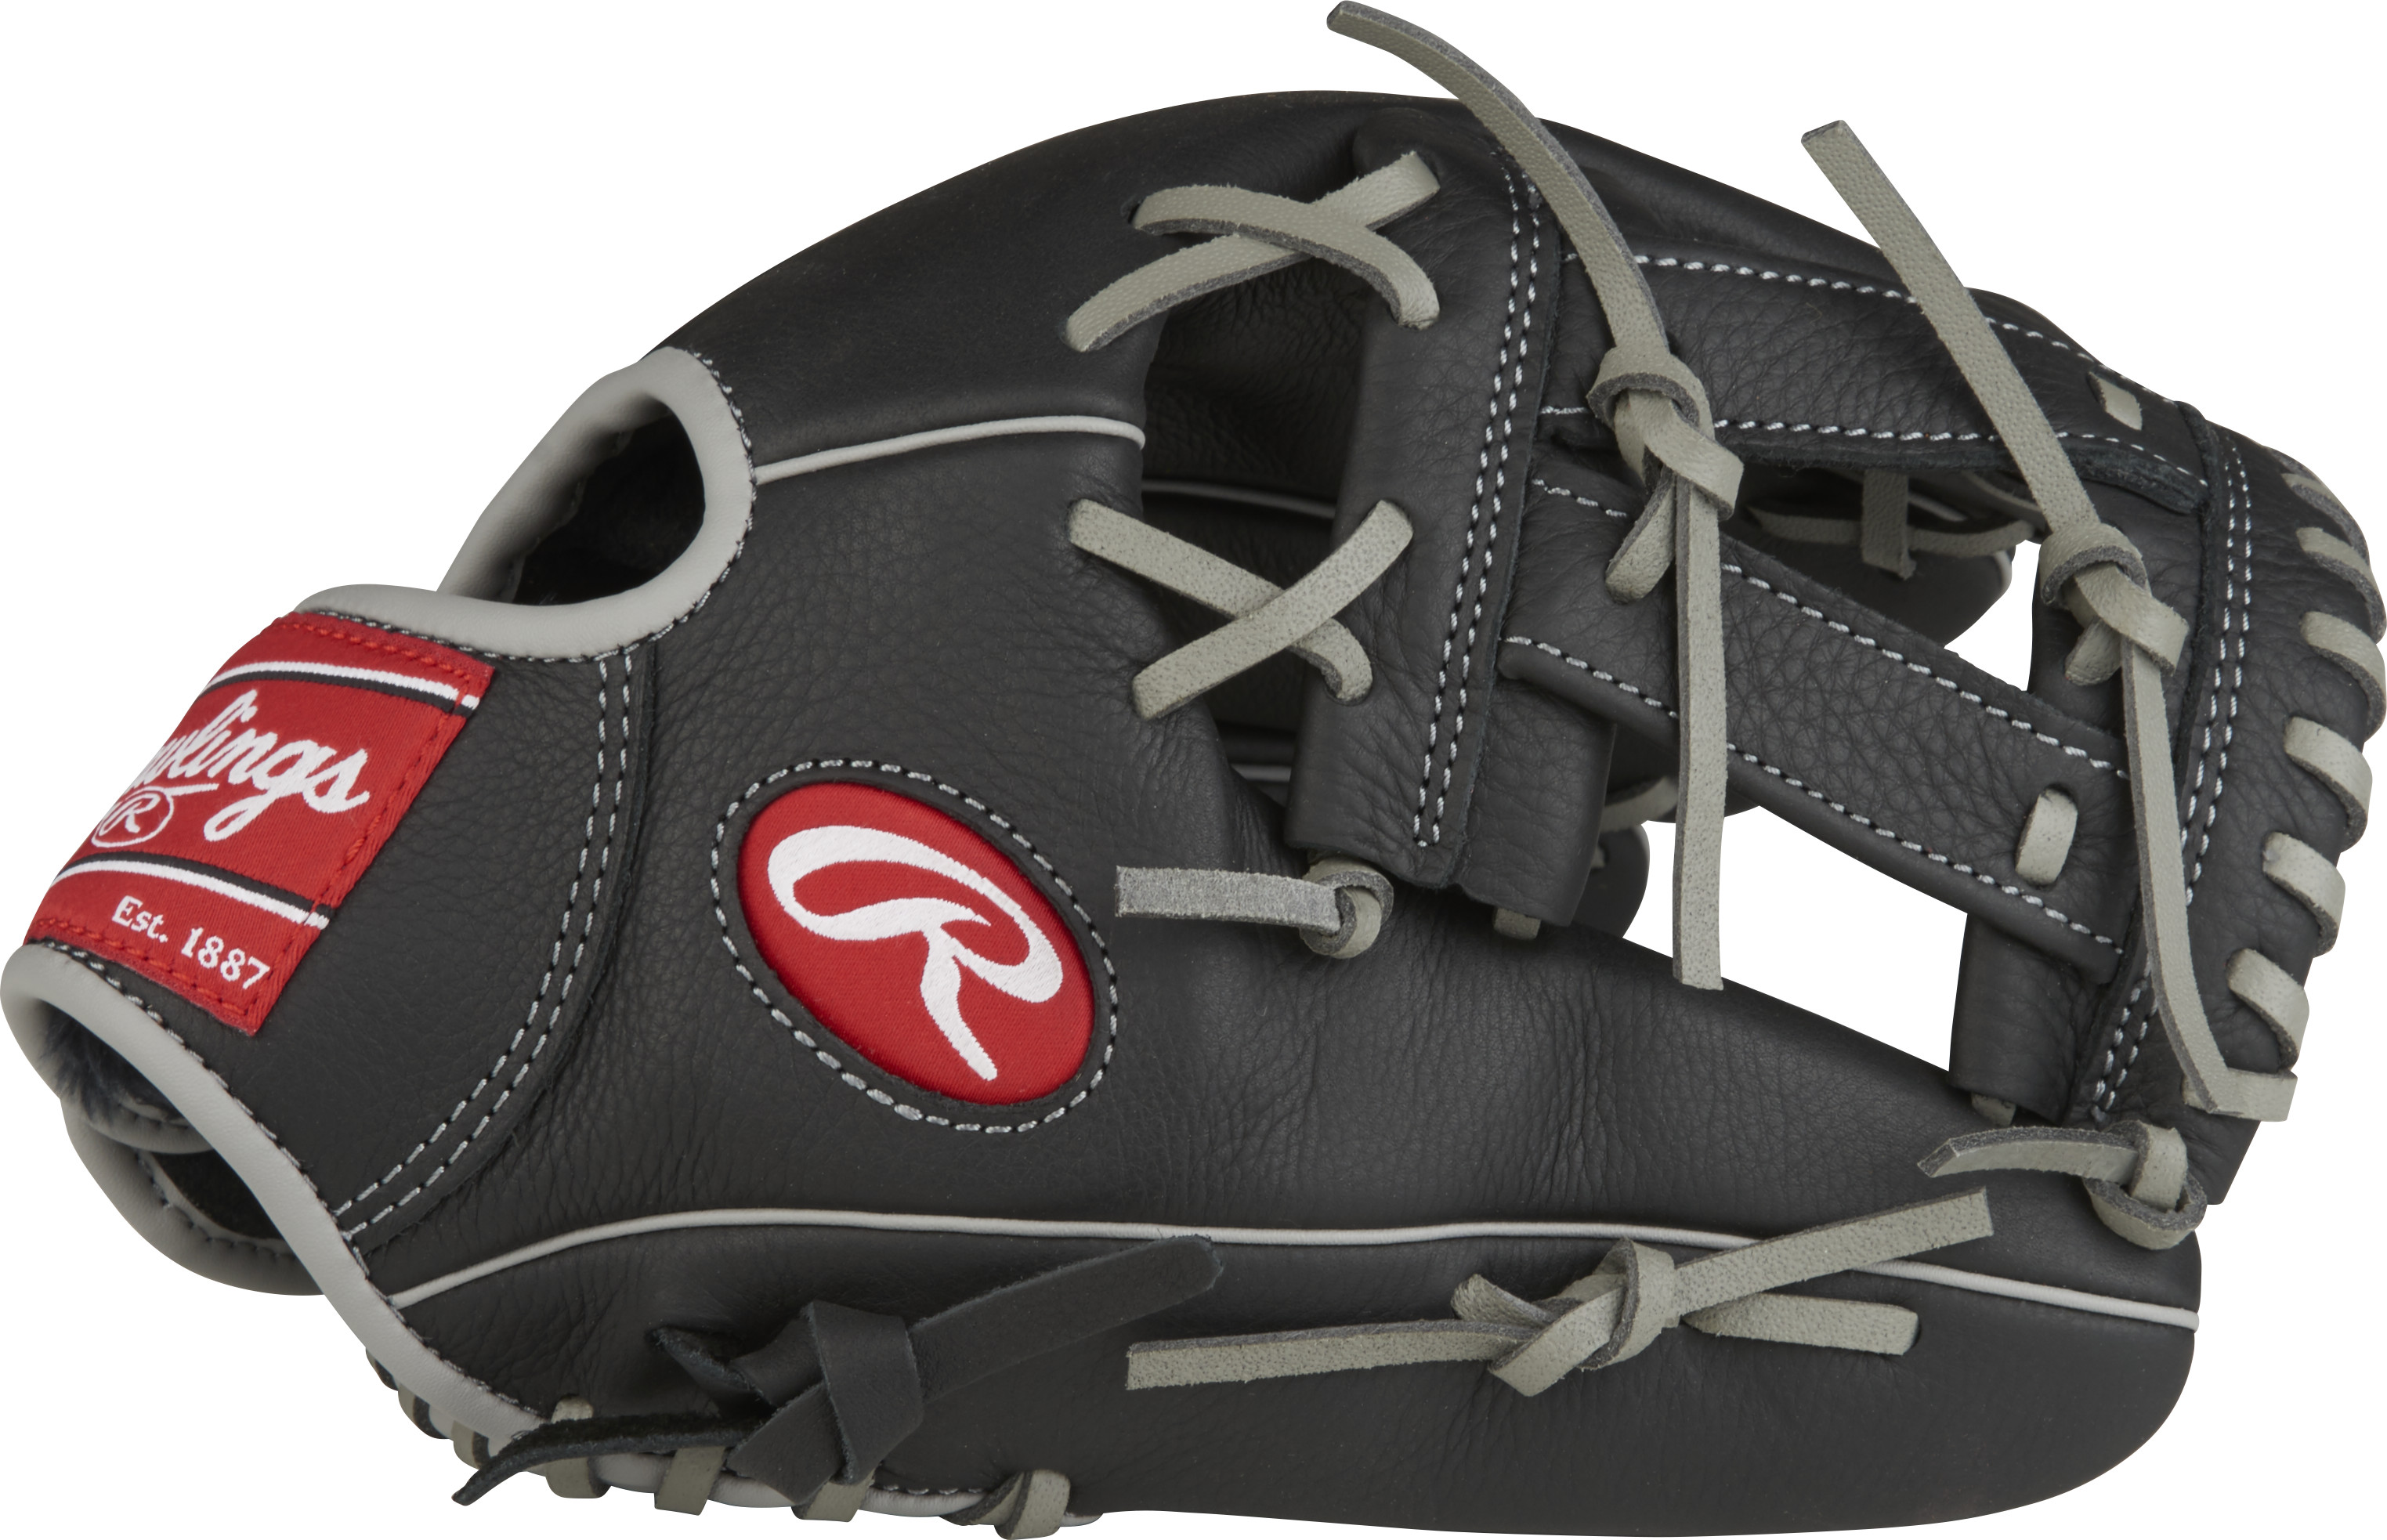 http://www.bestbatdeals.com/images/gloves/rawlings/SPL150MM-3.jpg